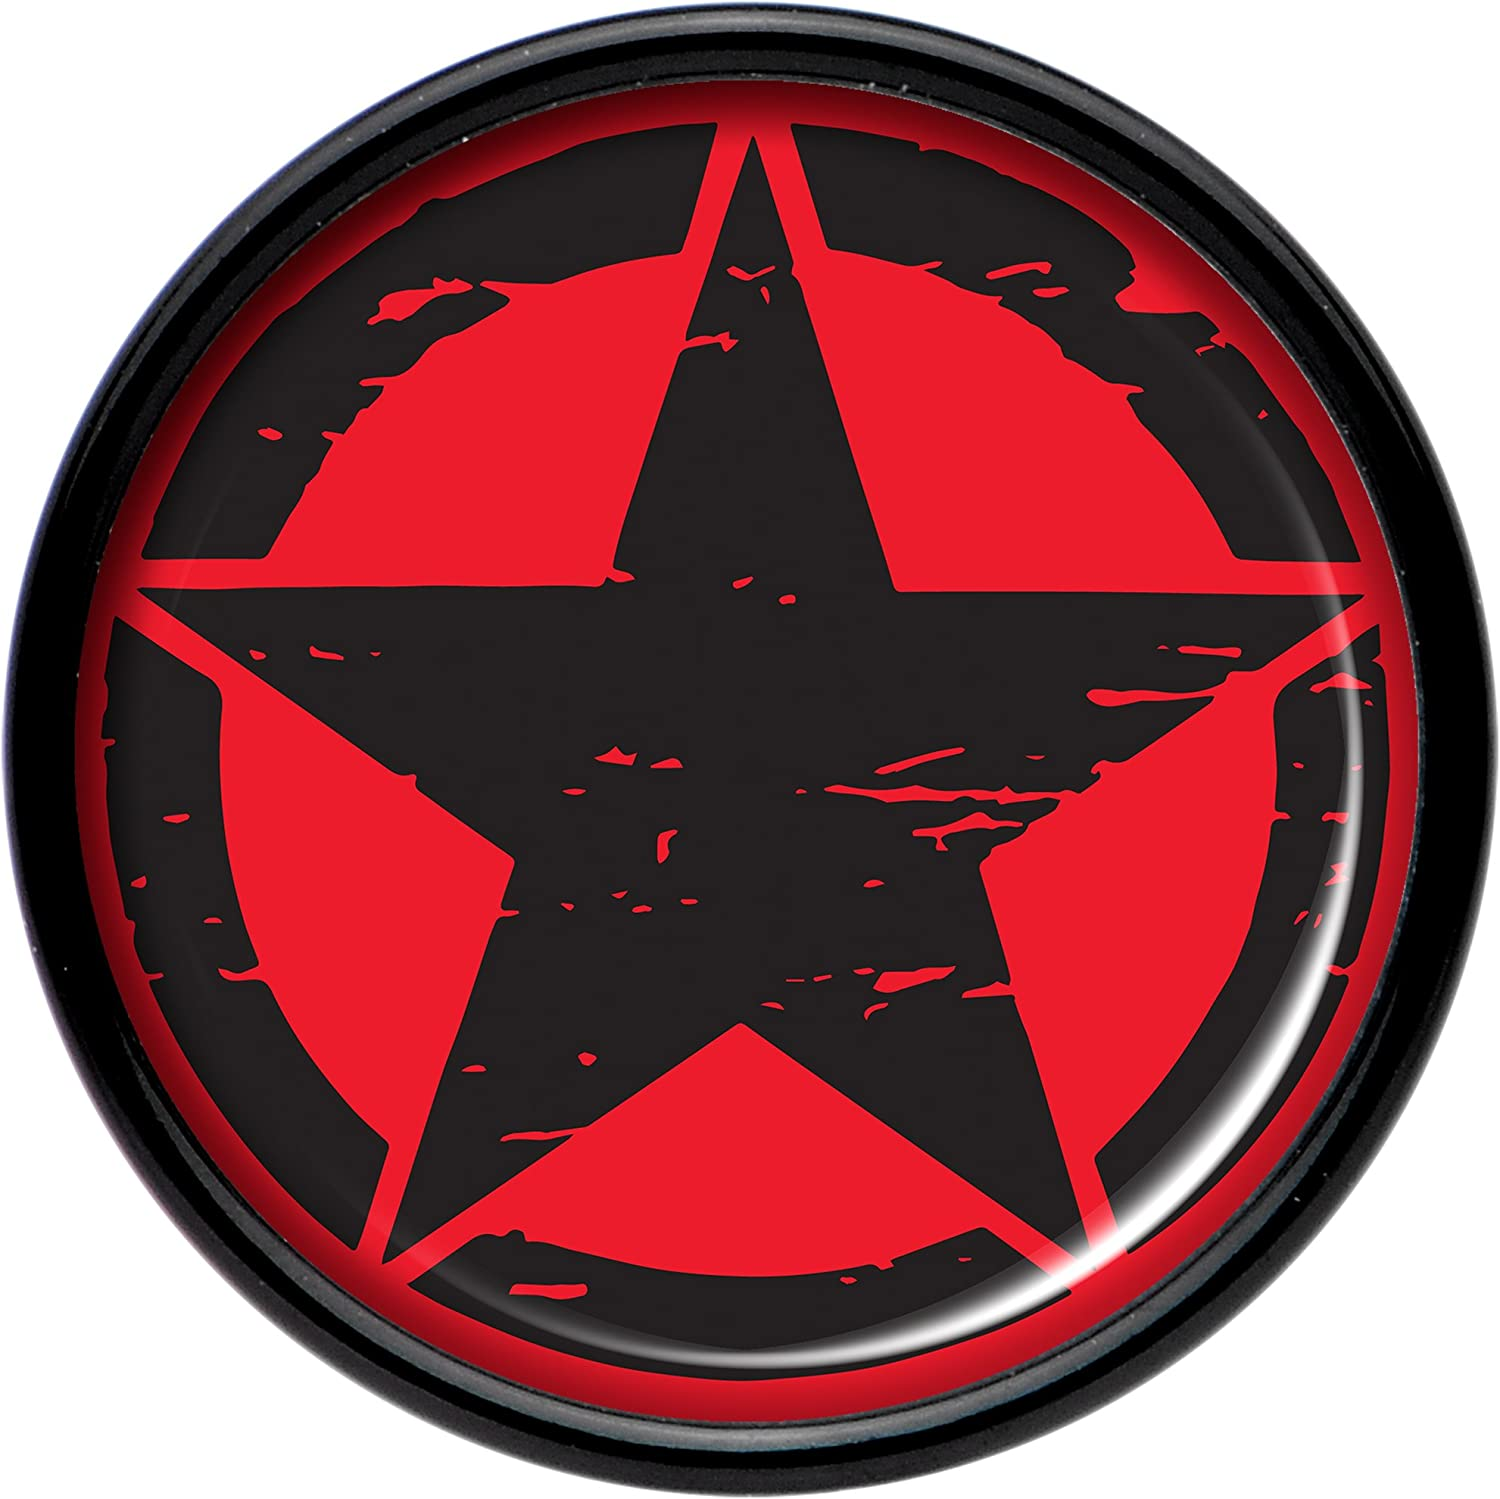 Body Candy Black Acrylic Black Red Distressed Star Saddle Plug Set of 2 5mm to 20mm